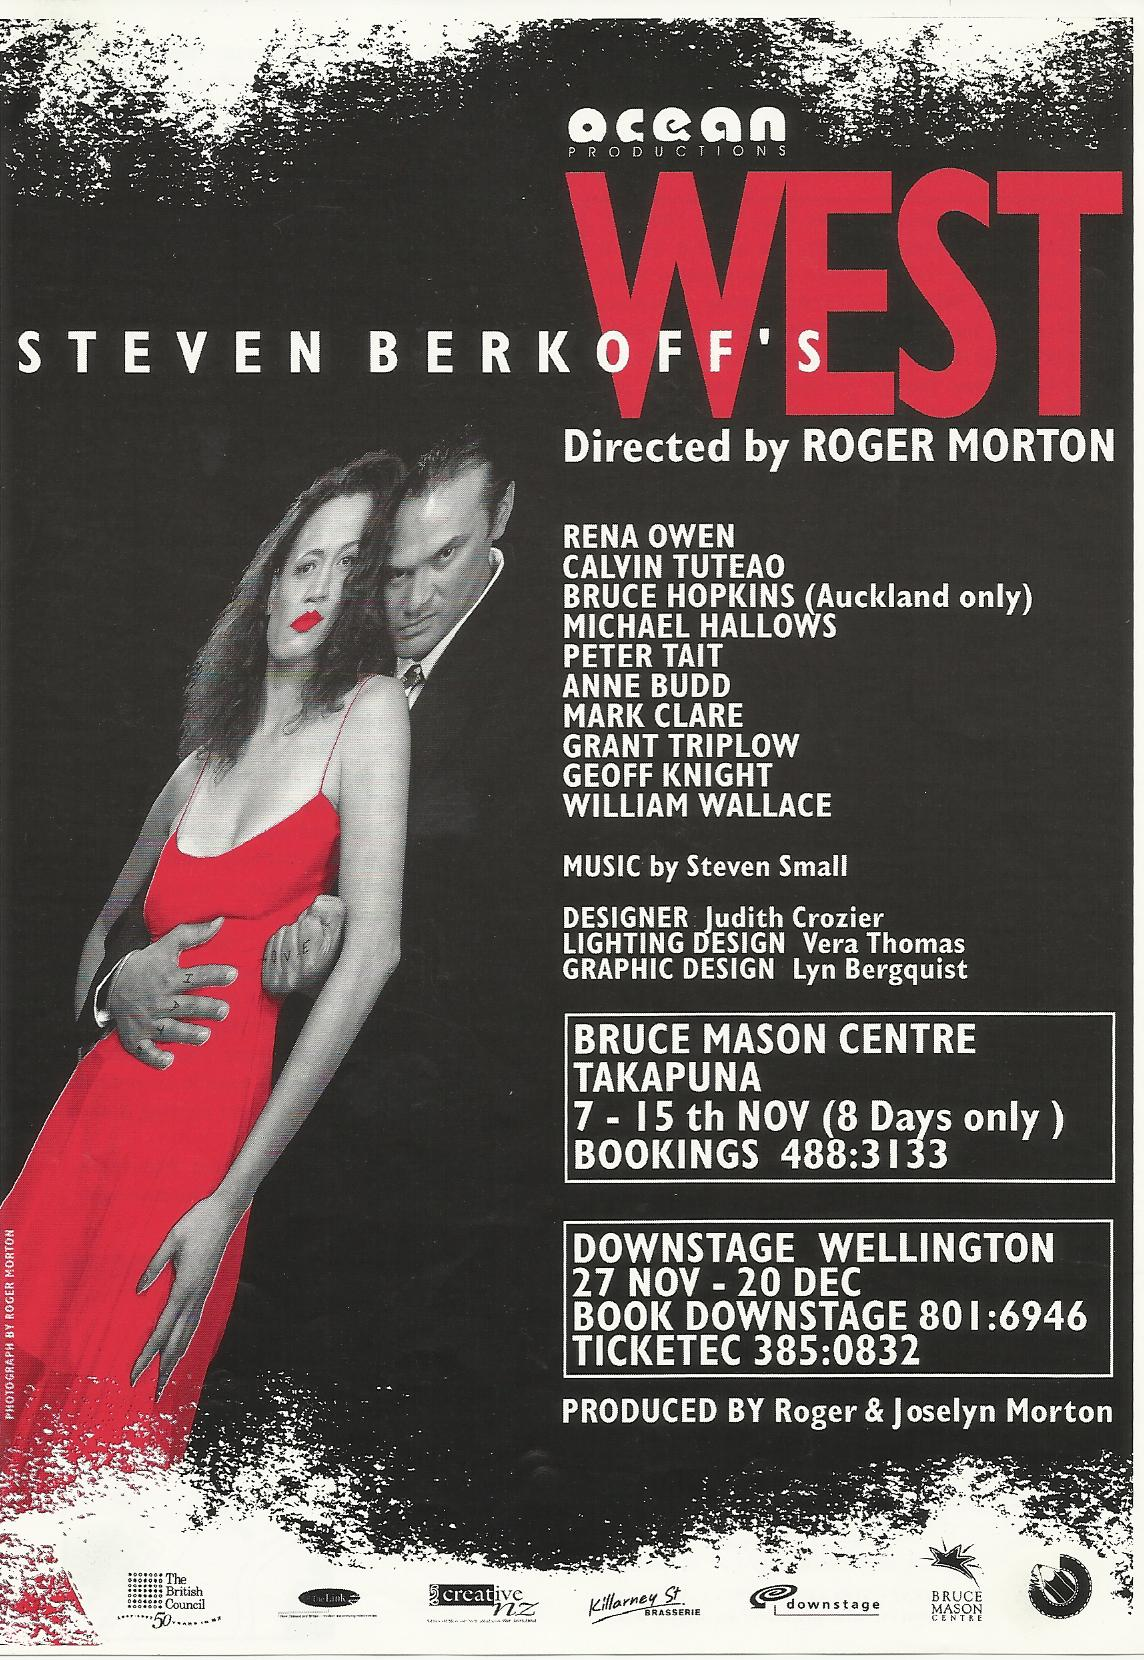 Stephan Berkoffs West starring Wena Owen